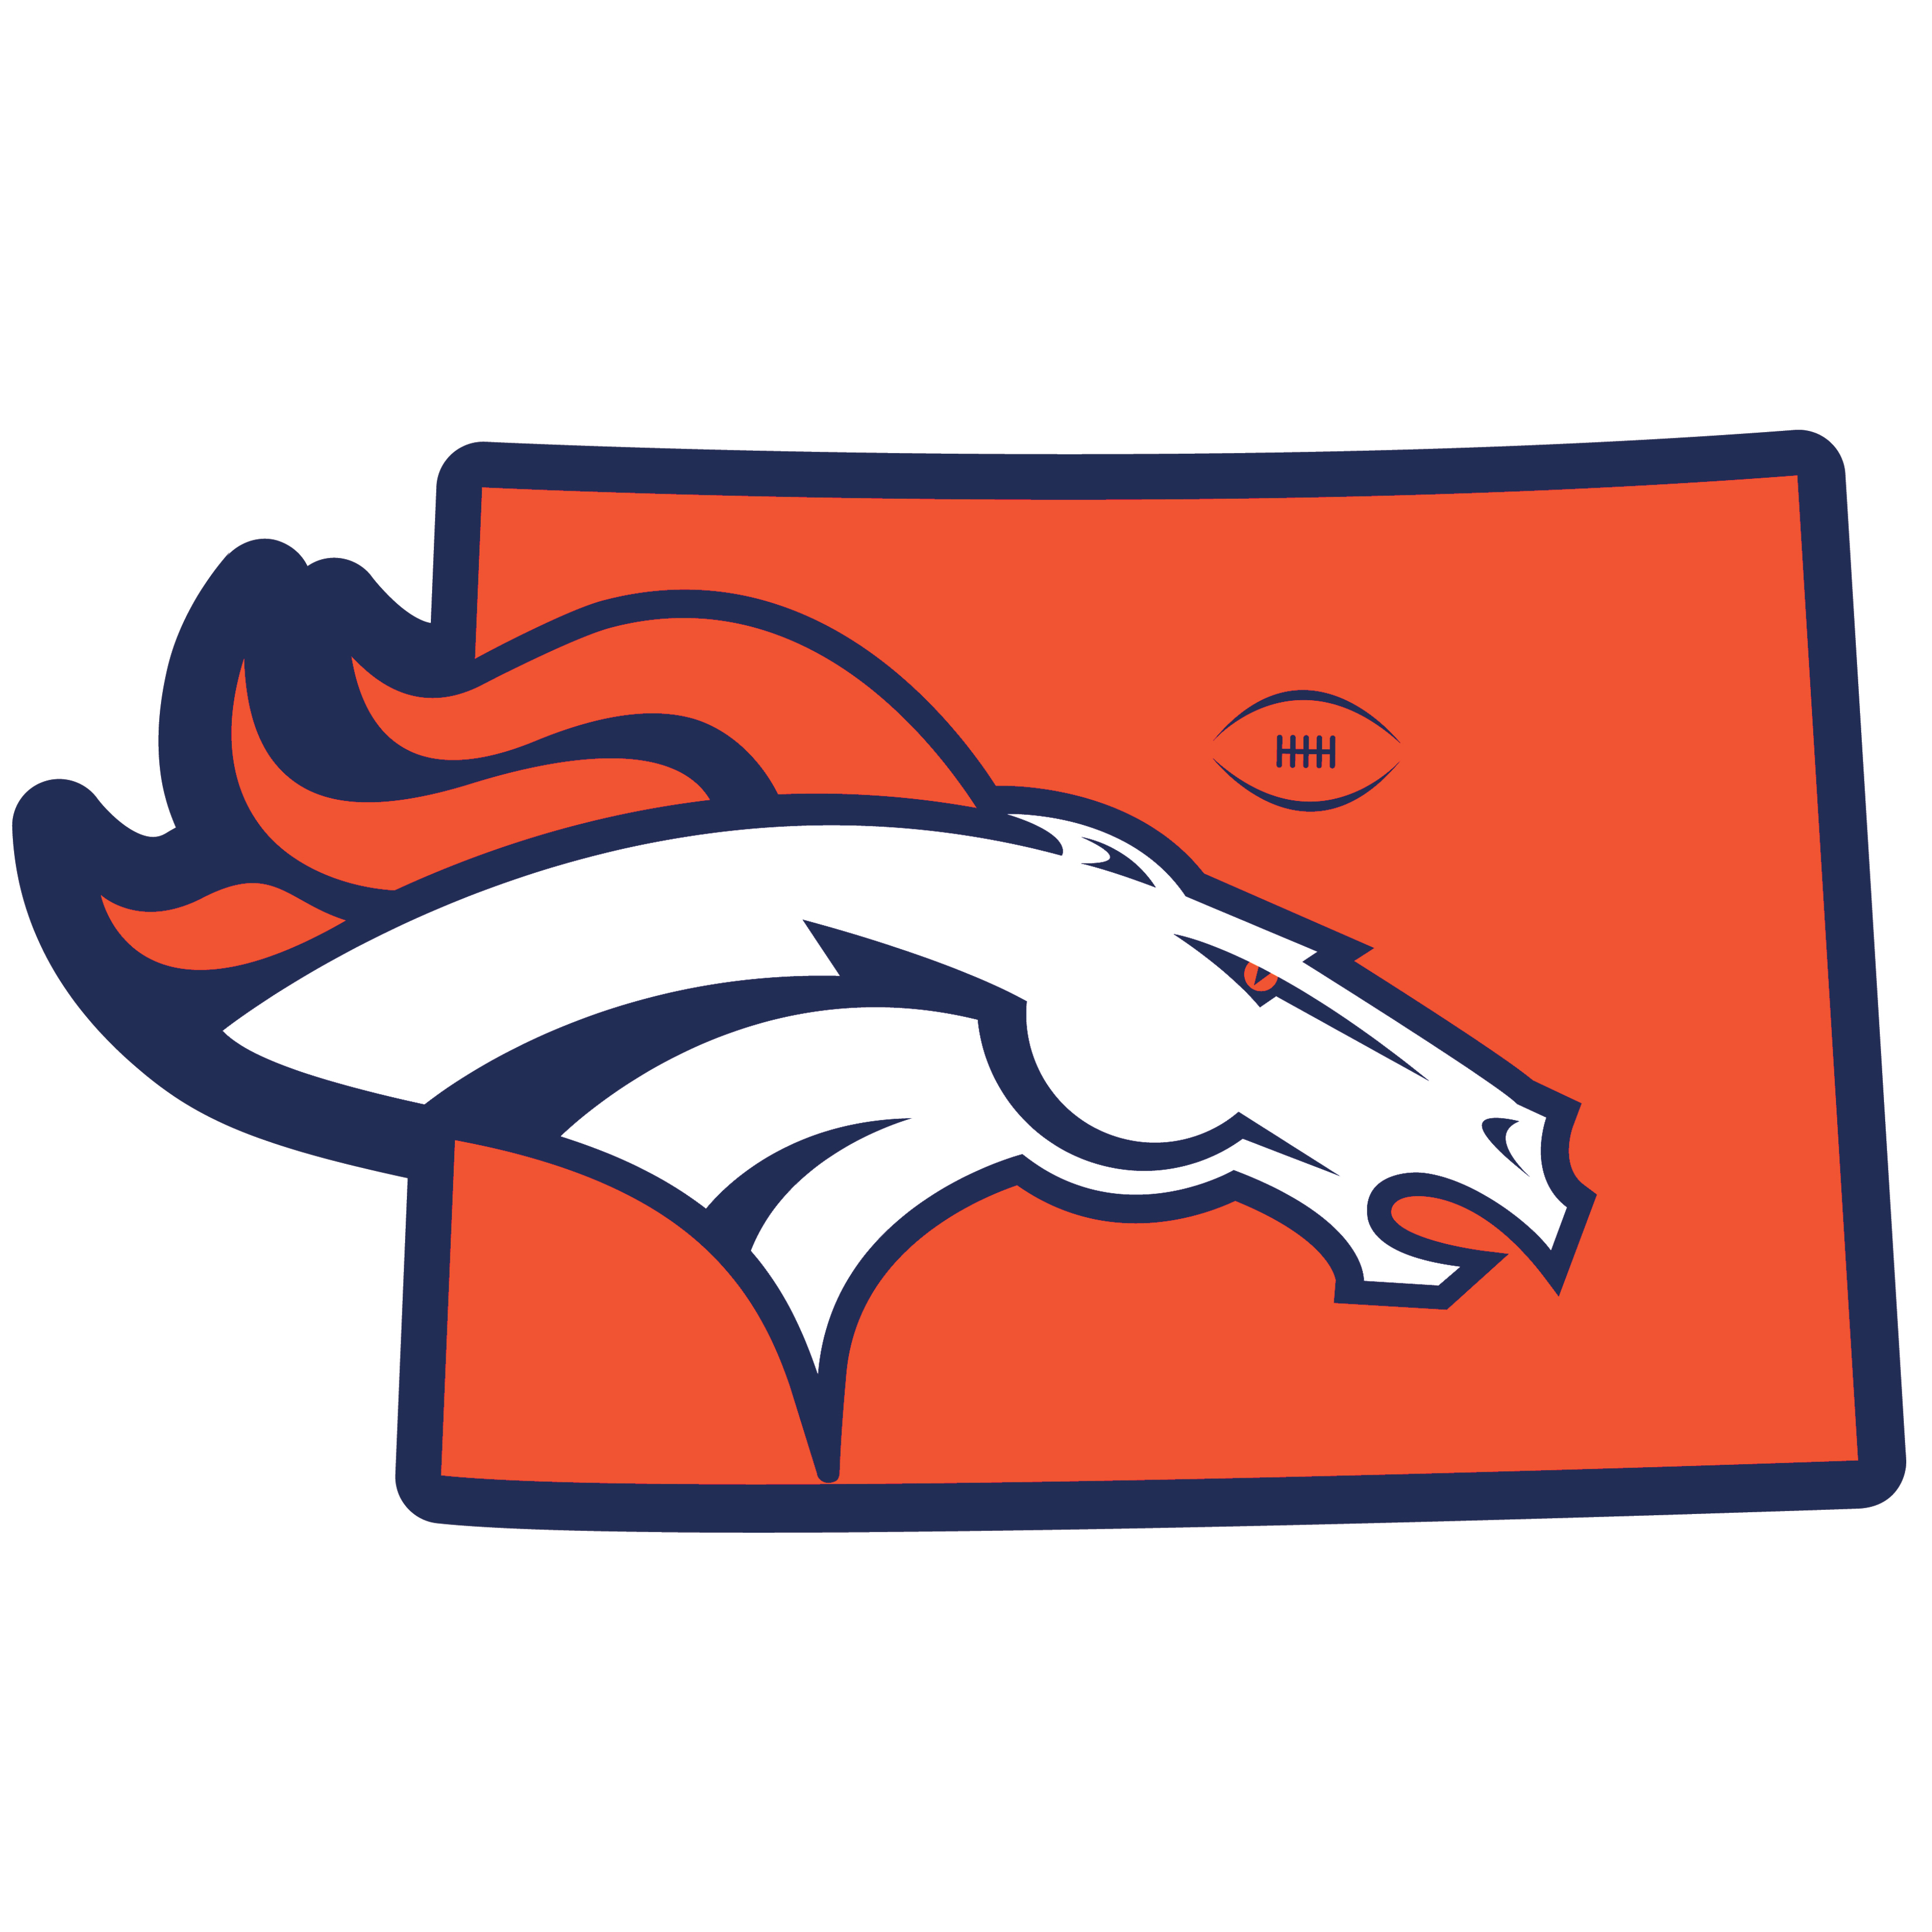 Denver Broncos Home State 11 Inch Magnet - Whether you are caravaning to the game or having a tailgate party make sure you car is wearing its fan gear with our extra large, 11 inch Denver Broncos home state magnets. These striking magnets can be easily placed on for game day and removed without the residue left by decals. The design features a bright state outline with the location of the team highlighted with a football and a large team logo.